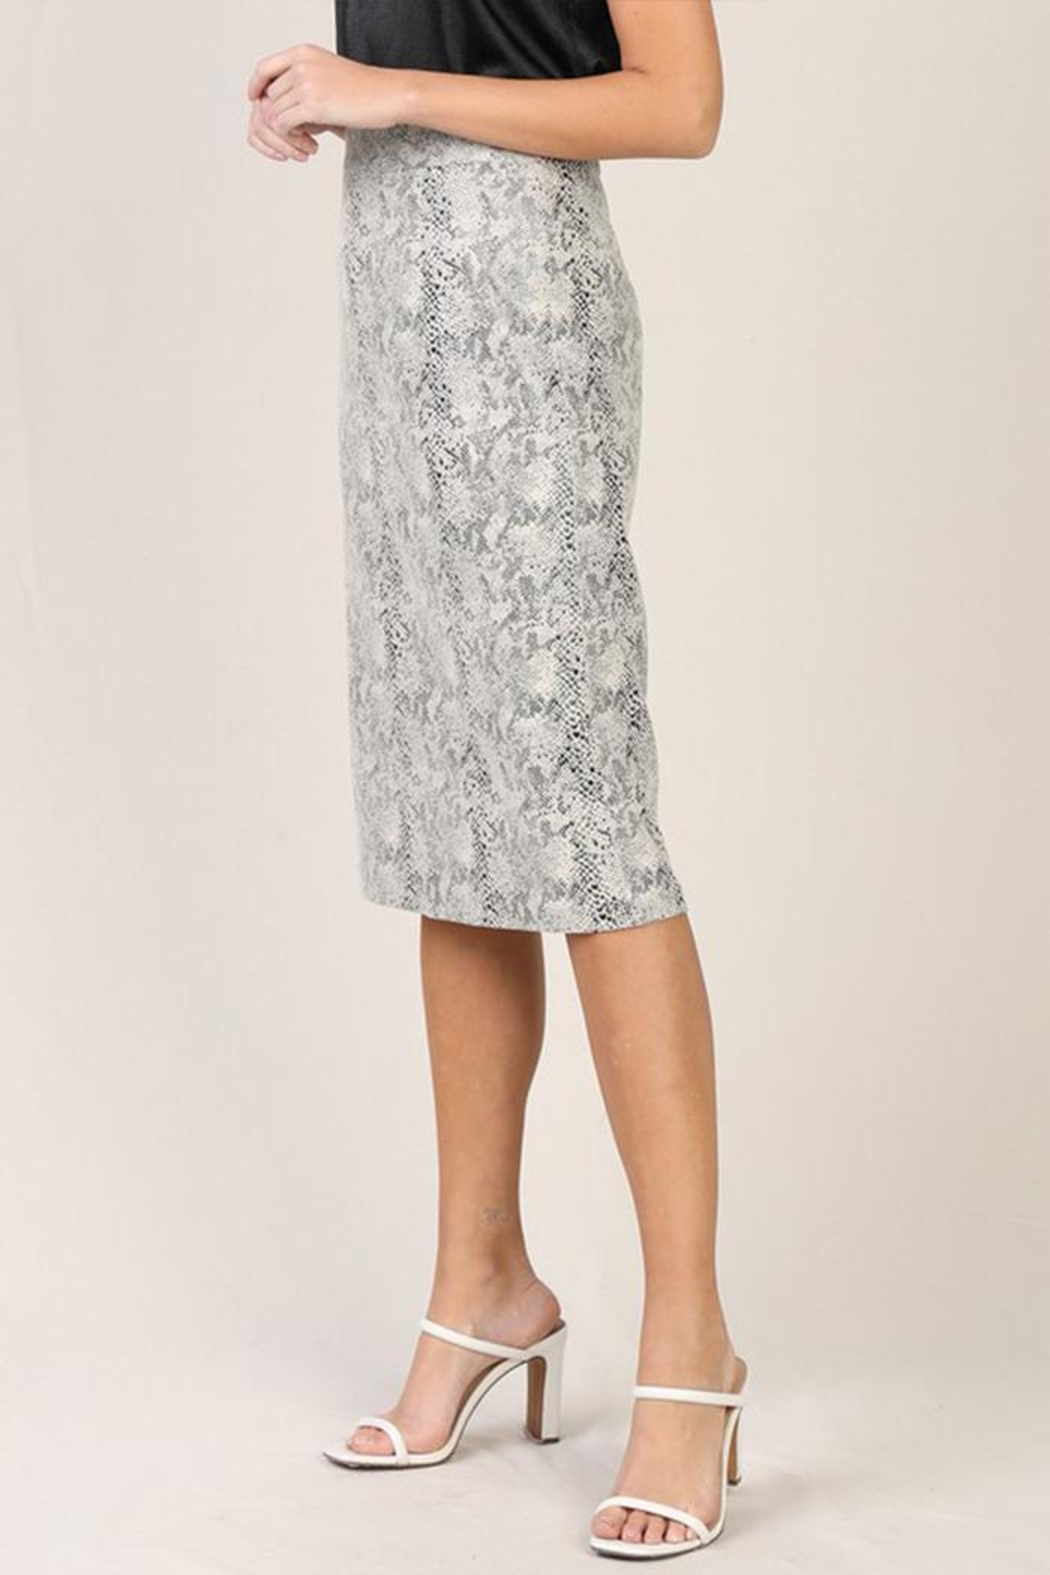 Skies Are Blue Snake Midi Dress - Side Cropped Image